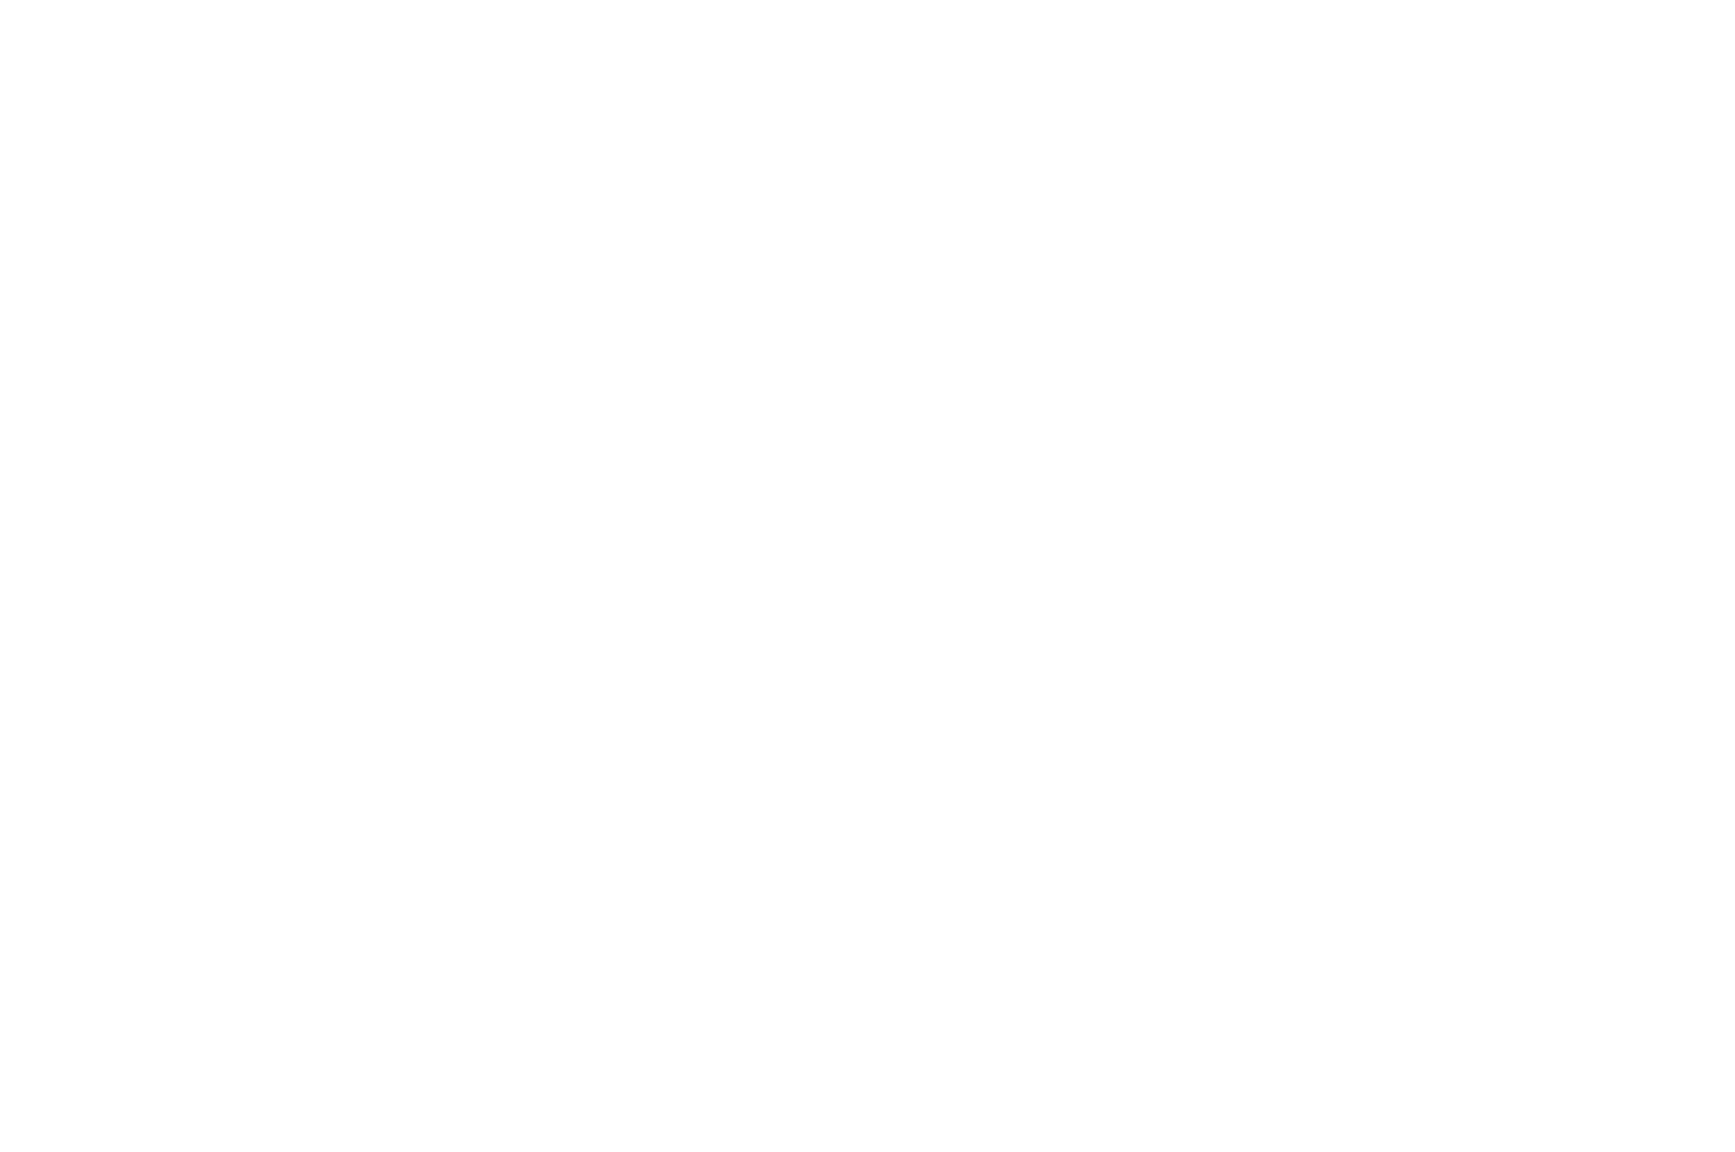 NOMINATED  - SCORE OF THE MONTH  - TMFF 2016 (1).png